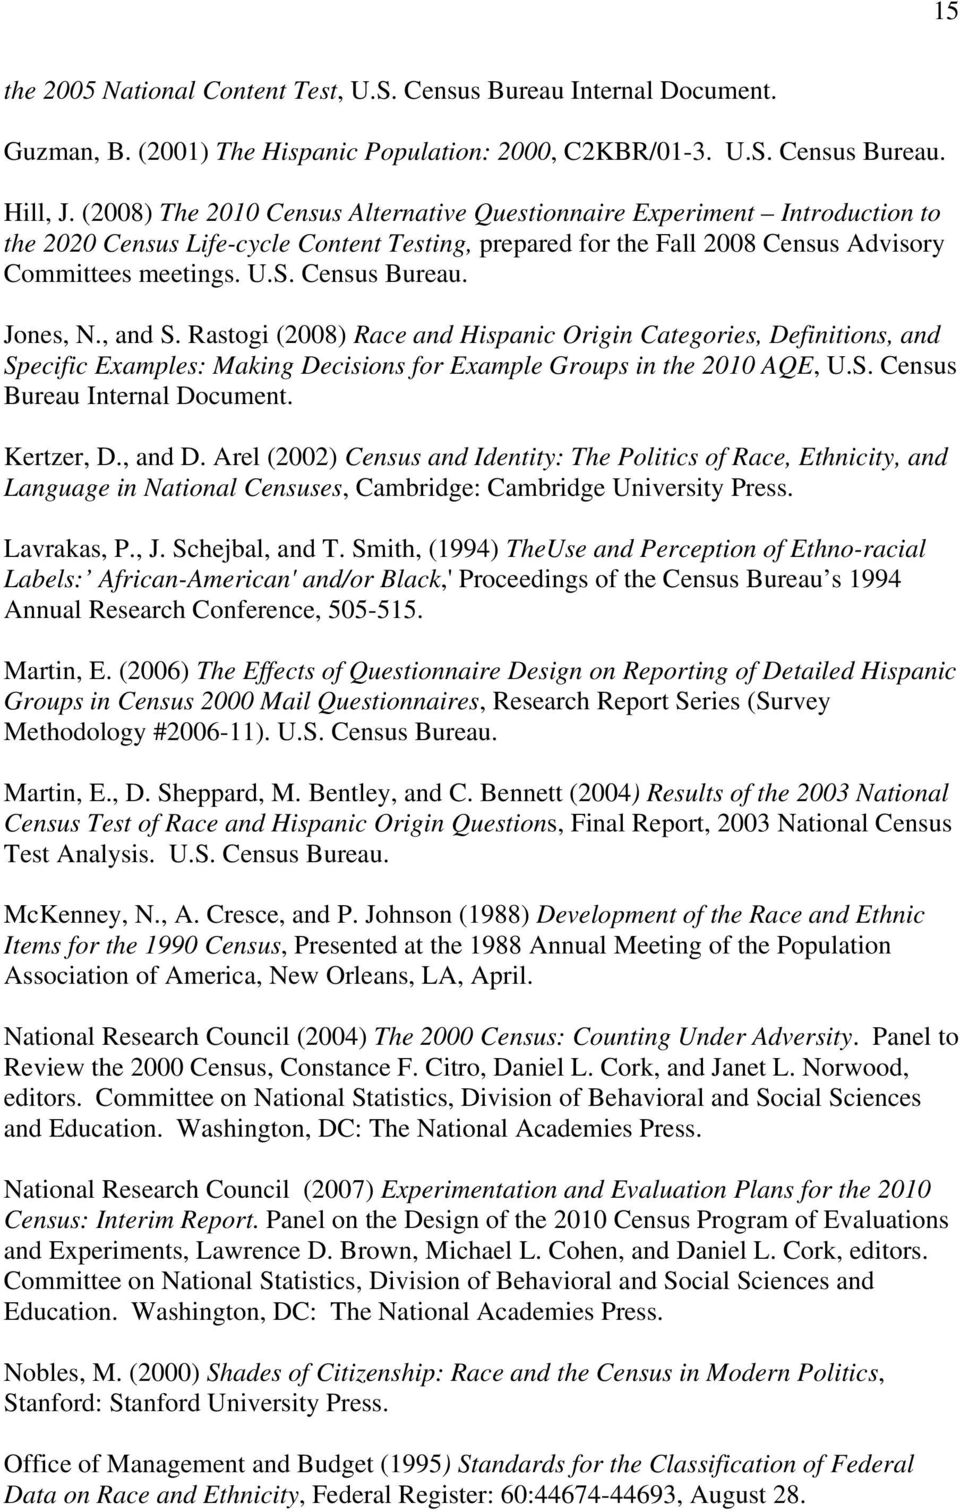 Census Bureau. Jones, N., and S. Rastogi (2008) Race and Hispanic Origin Categories, Definitions, and Specific Examples: Making Decisions for Example Groups in the 2010 AQE, U.S. Census Bureau Internal Document.